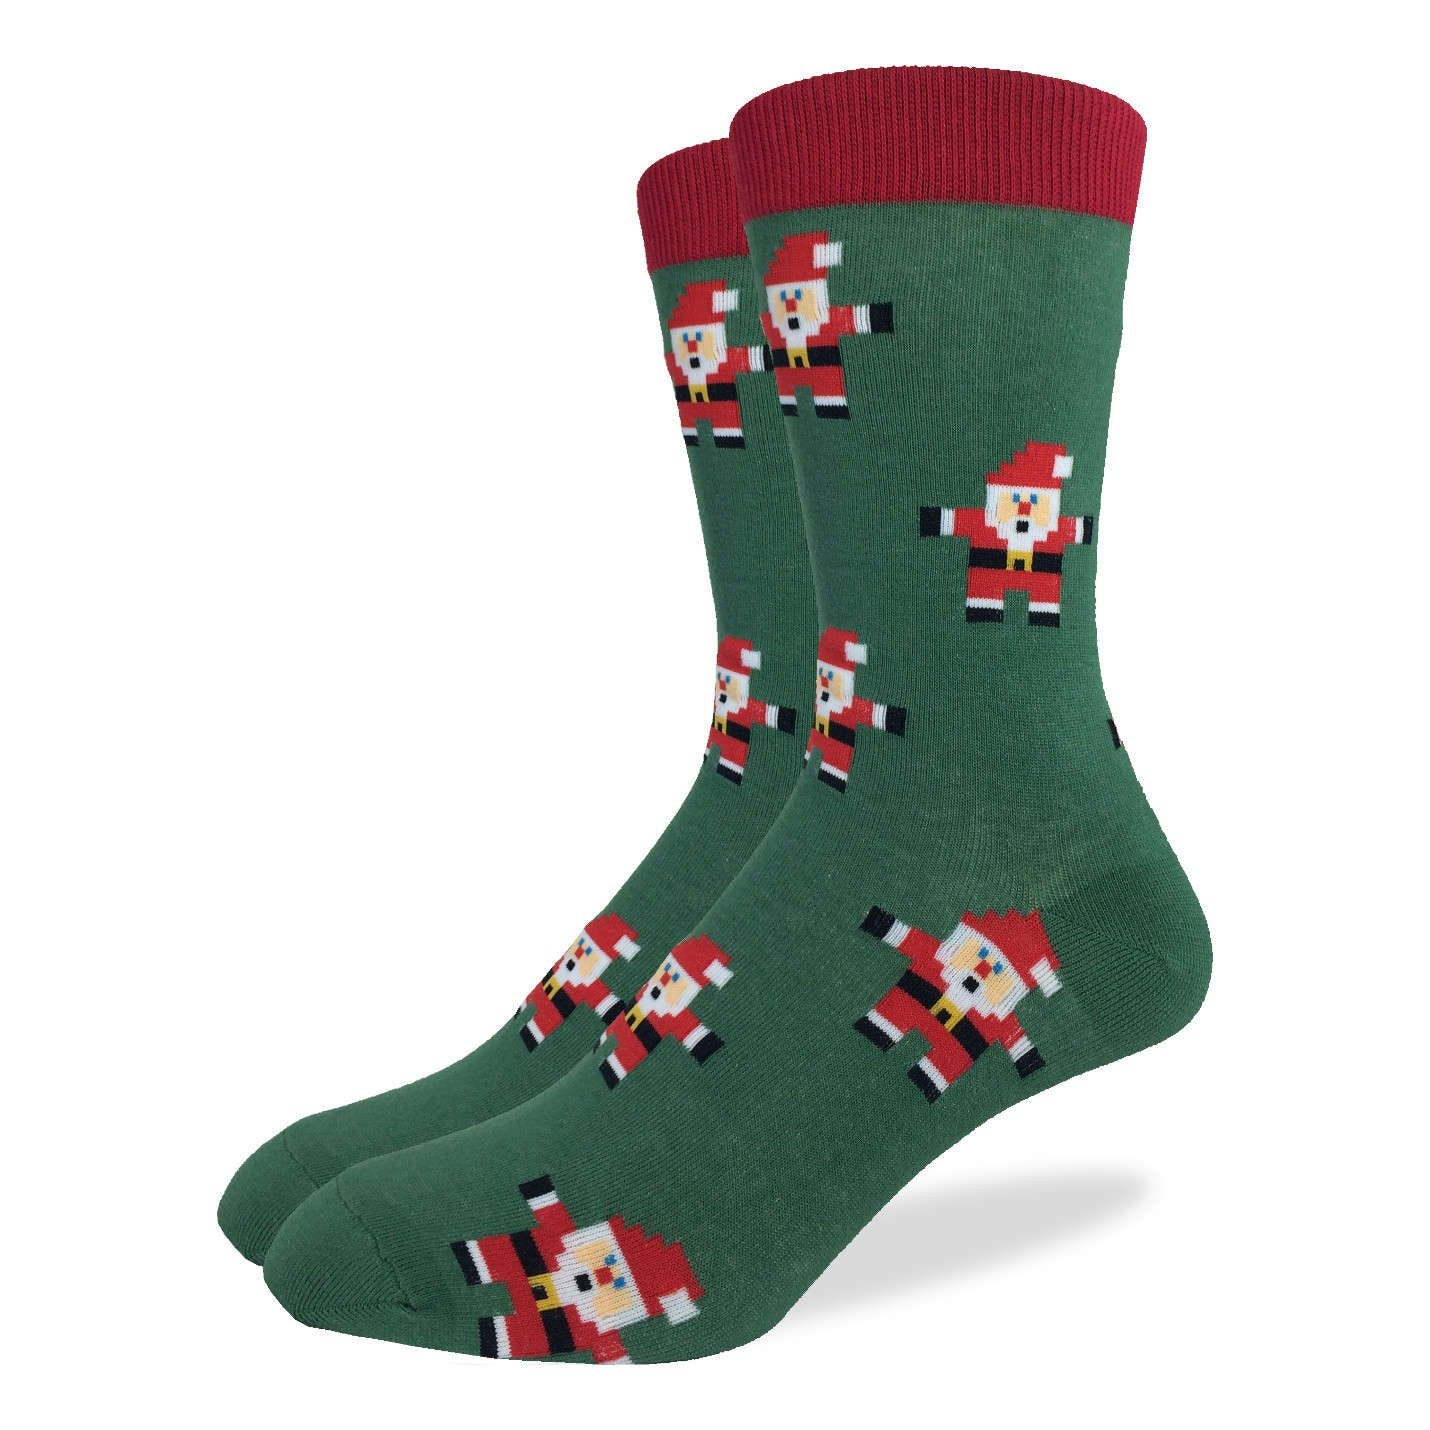 Santa Claus Crew Socks